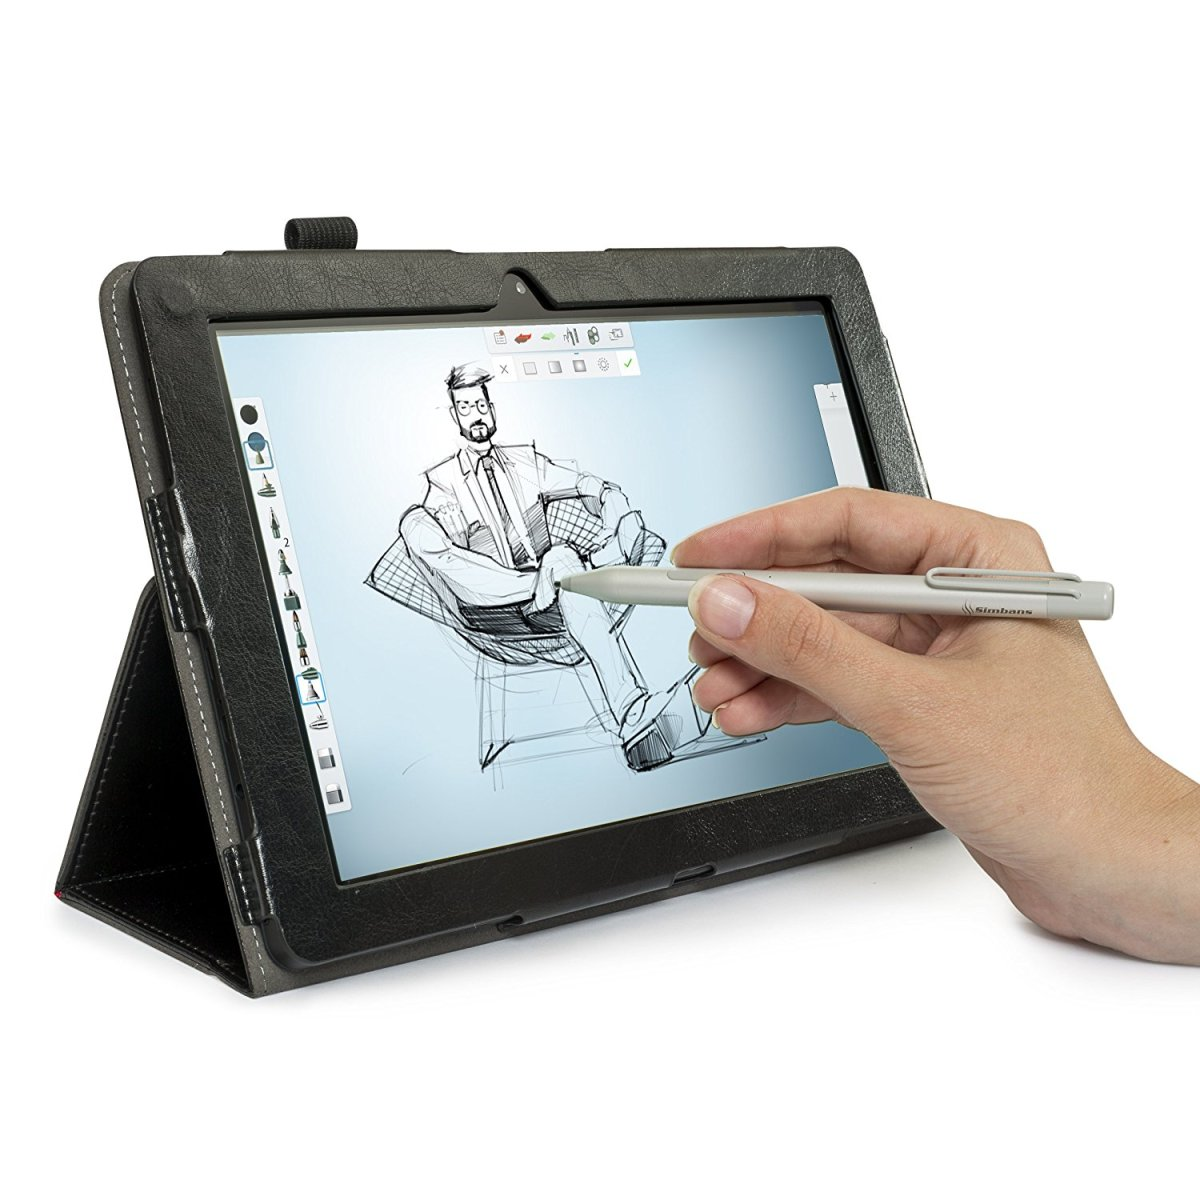 Simbans PicassoTab 10.1 inch Tablet